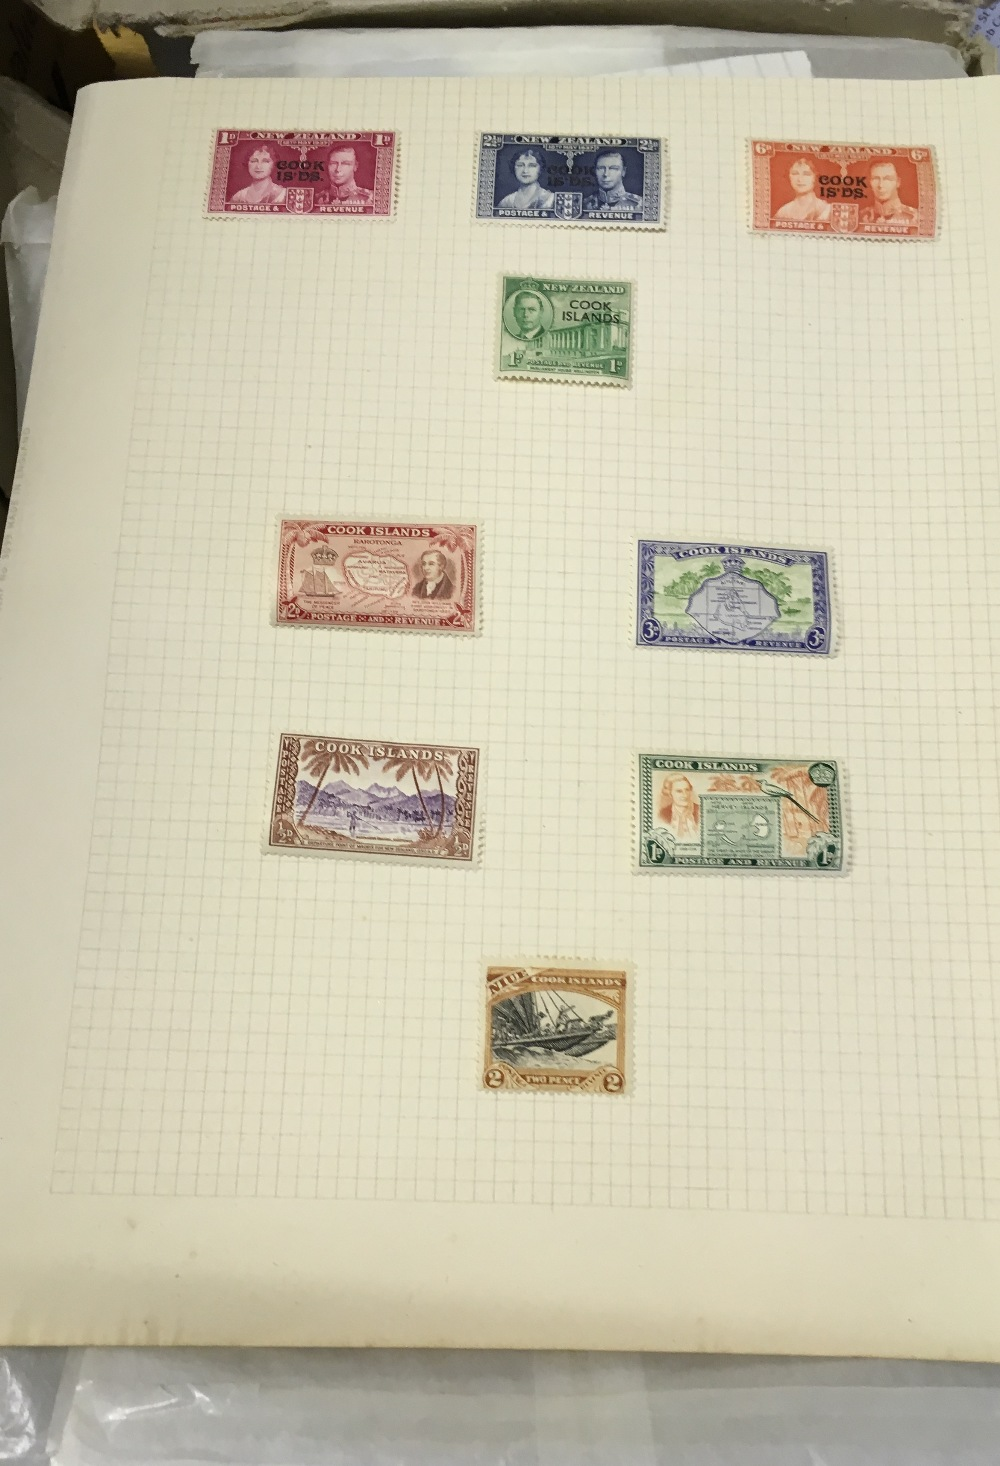 Lot 6 - STAMPS : Mostly British Commonwealth 1960s mint material sorted into packets.